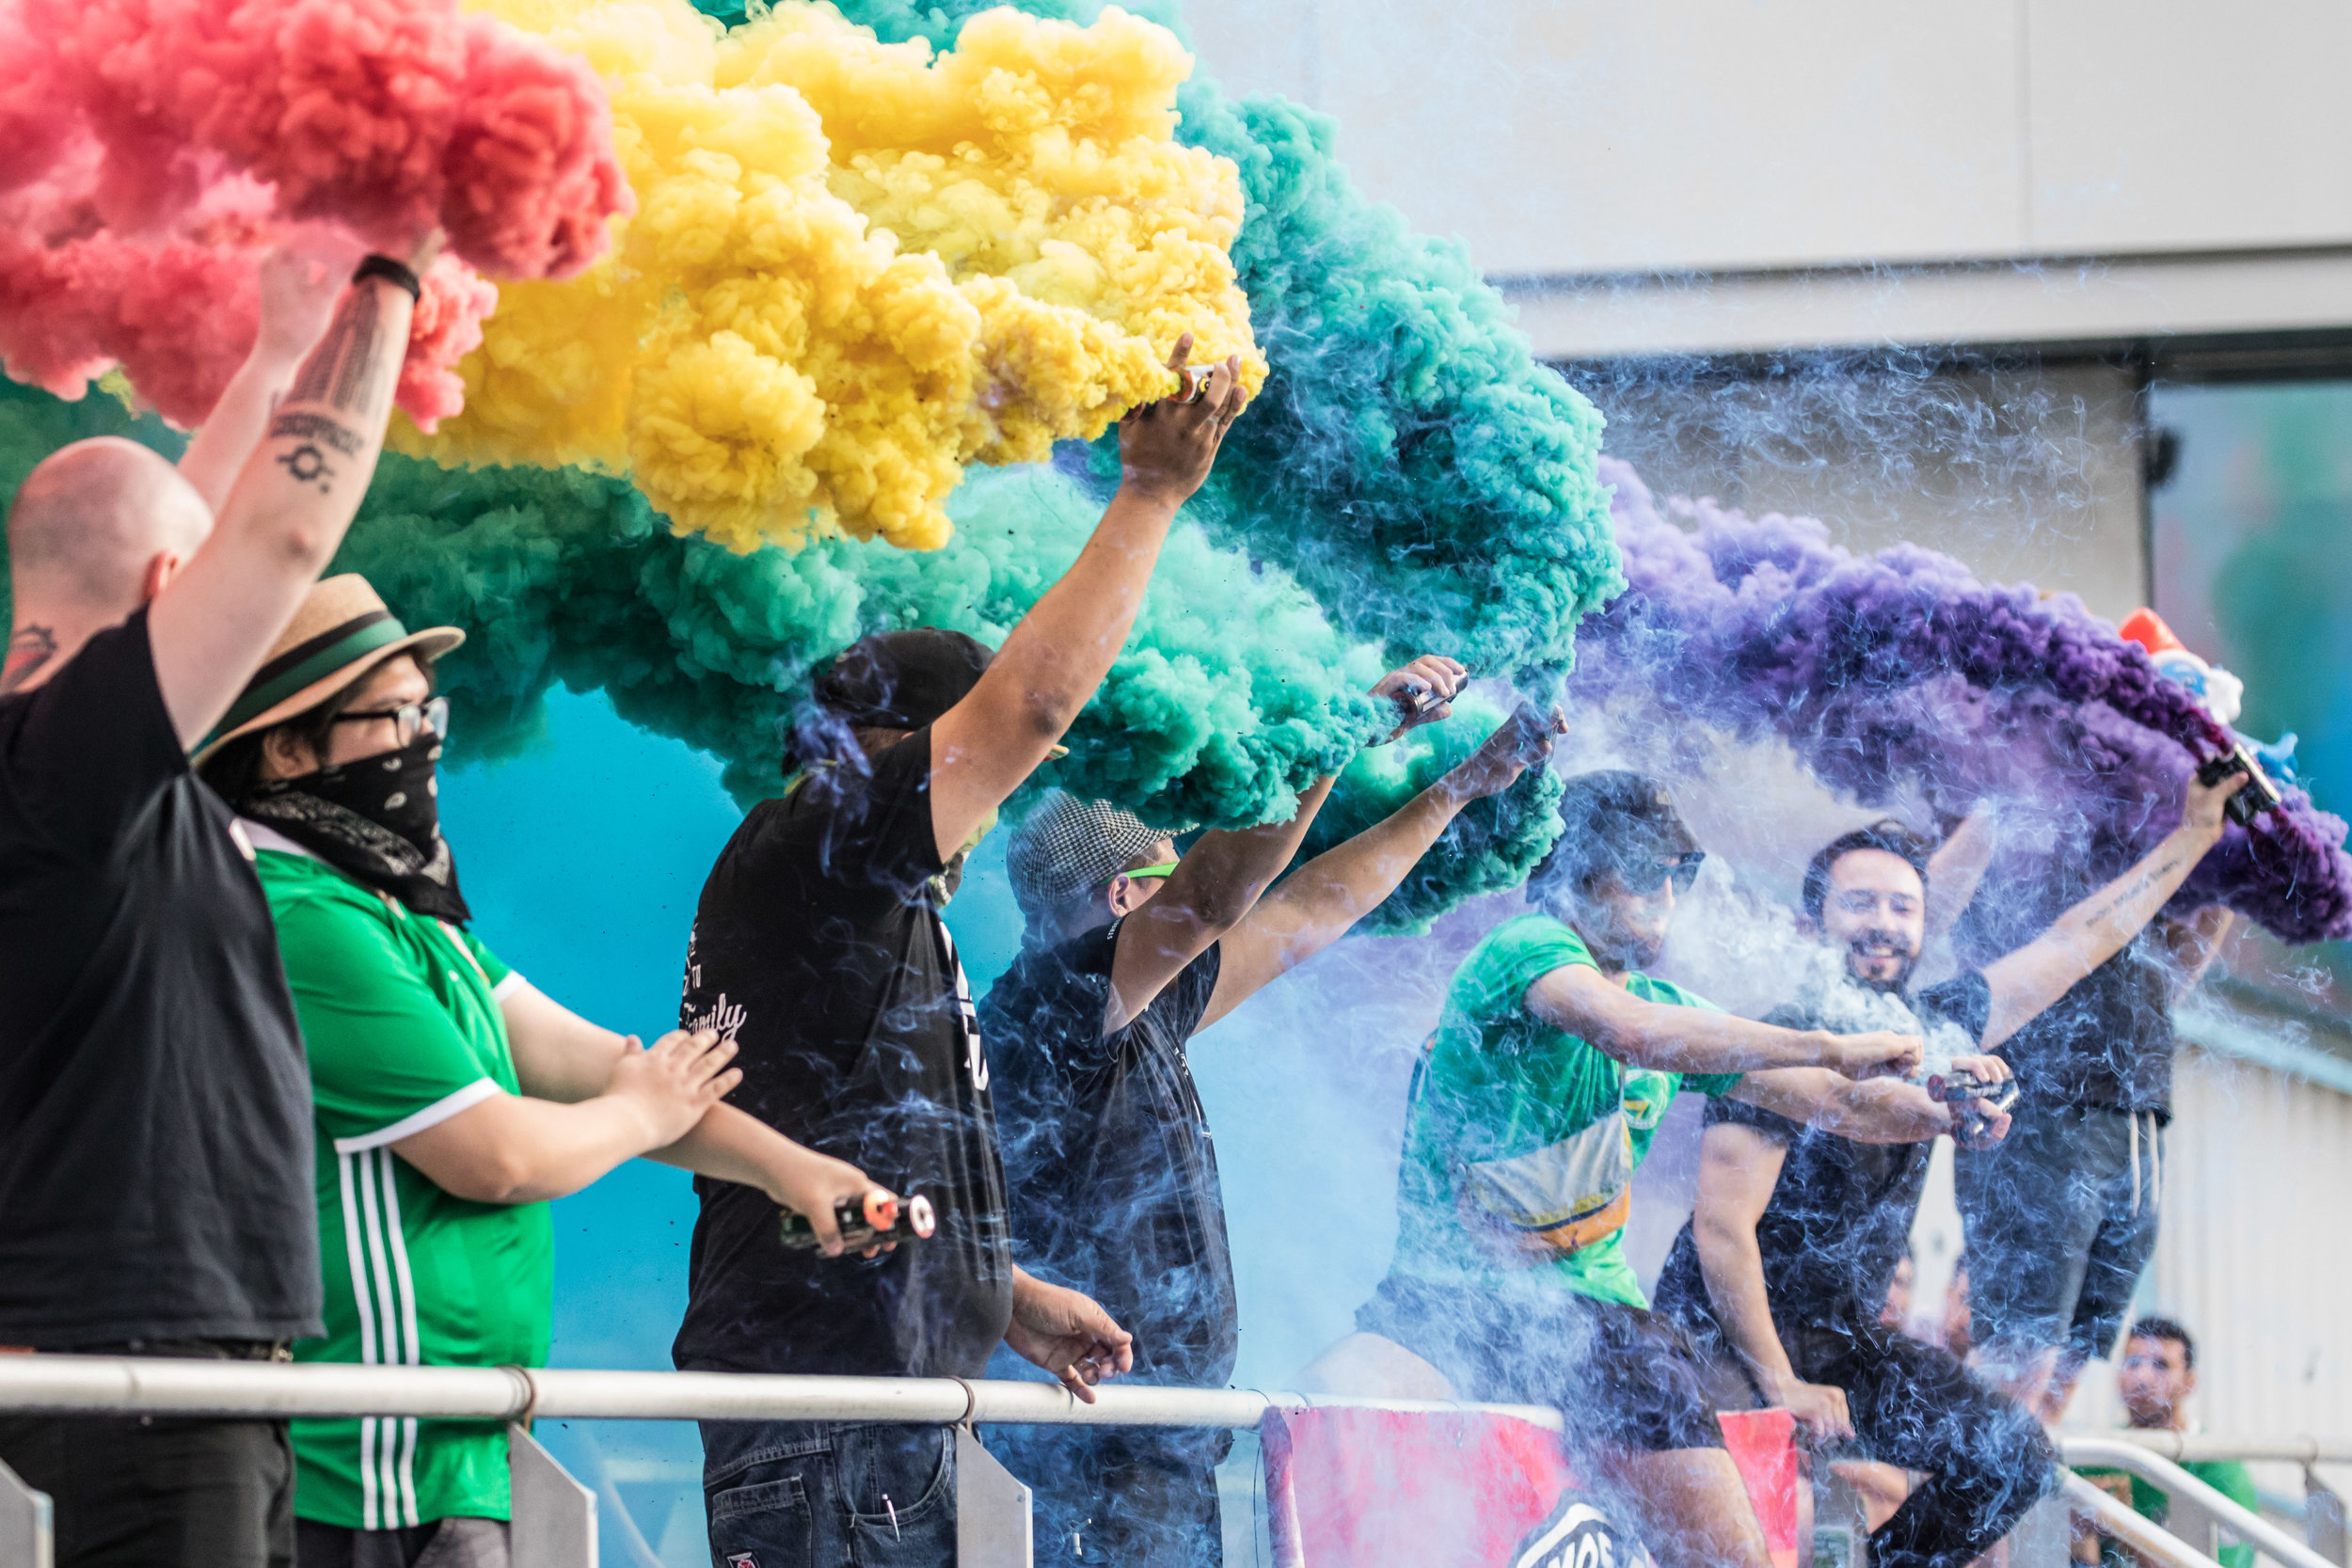 Cosmos fans celebrate in colorful fashion. // Photo by Matthew Levine